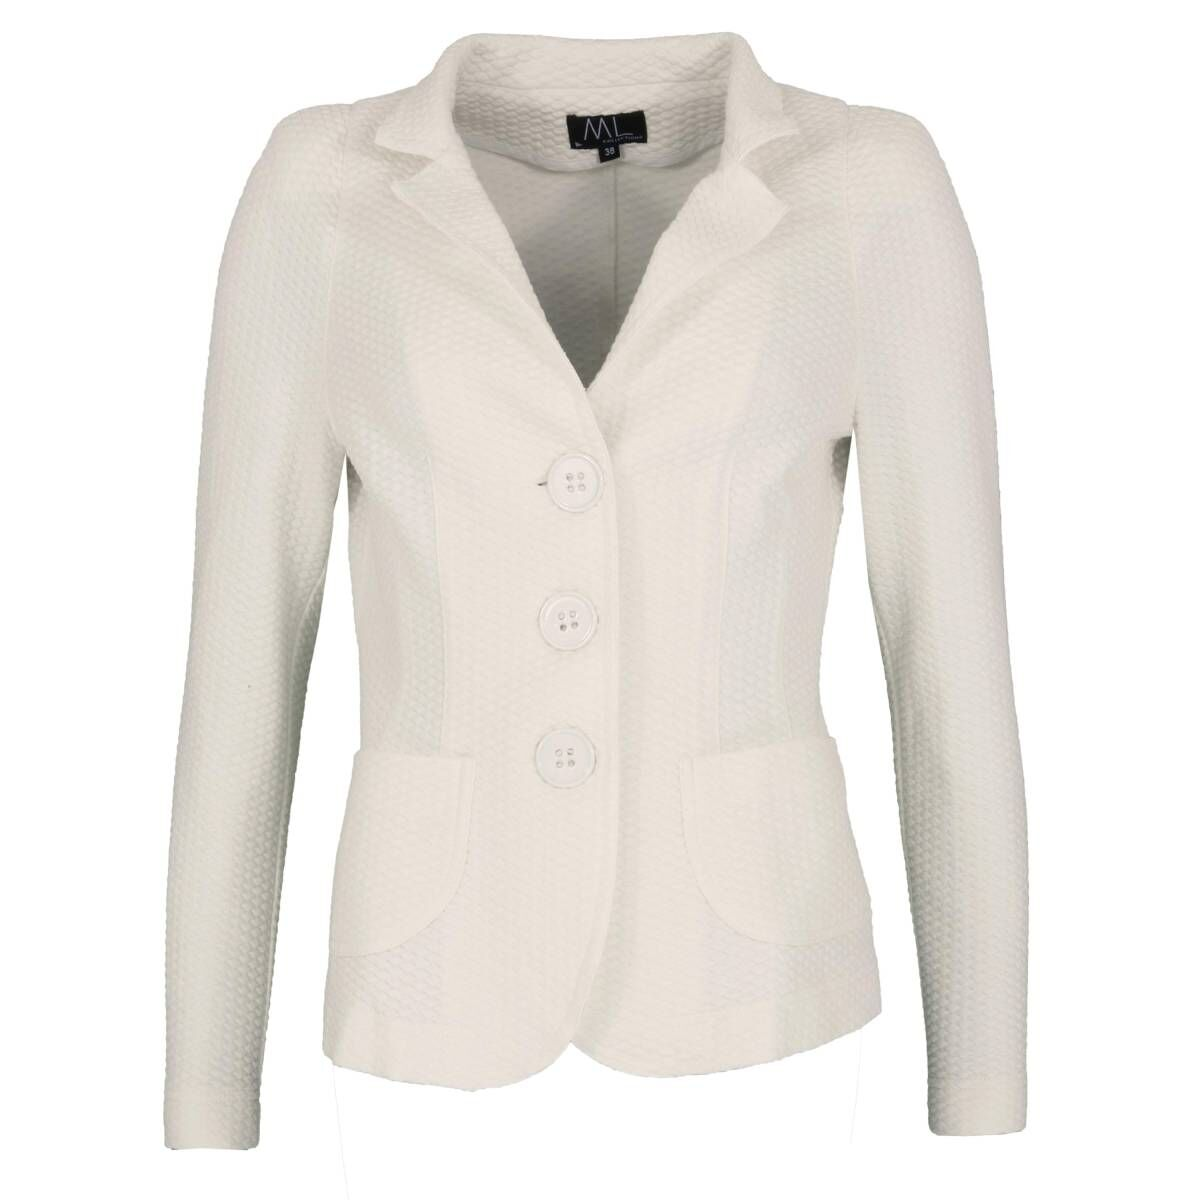 ML Collections blazers 20408 roomwit bij Penninkhofmode.nl